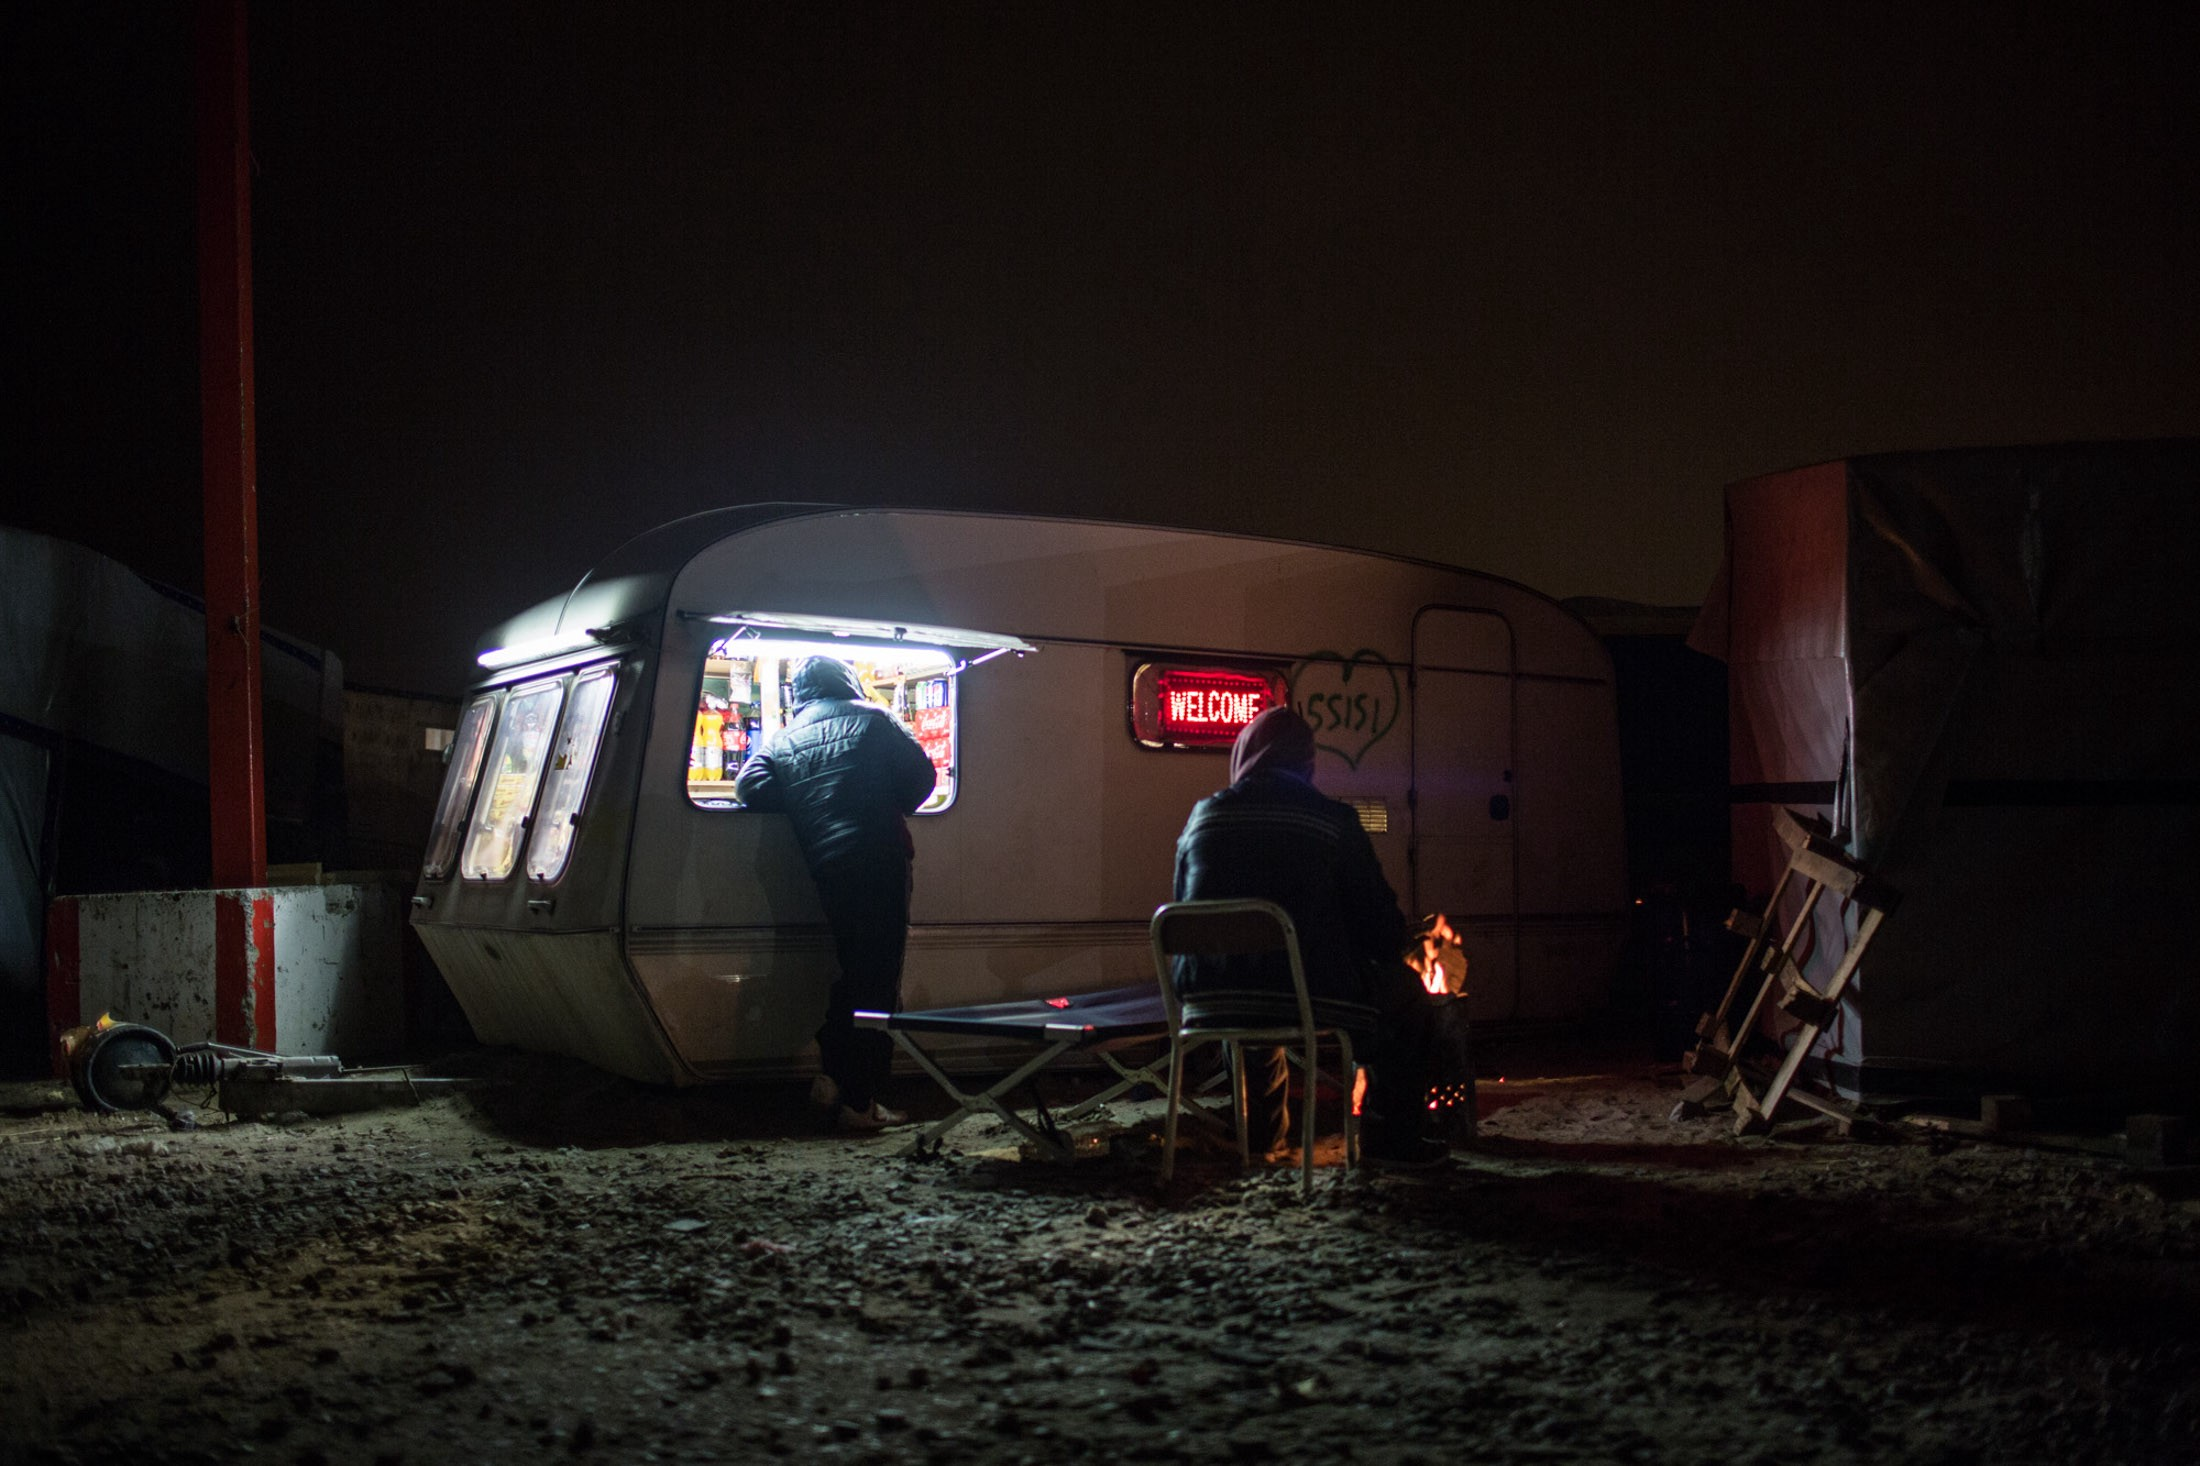 In this squalid encampment outside Calais, where food security is in jeopardy, refugees survive on donations cooked in communal kitchens or distributed by grassroots volunteer organizations striving to provide enough to eat.